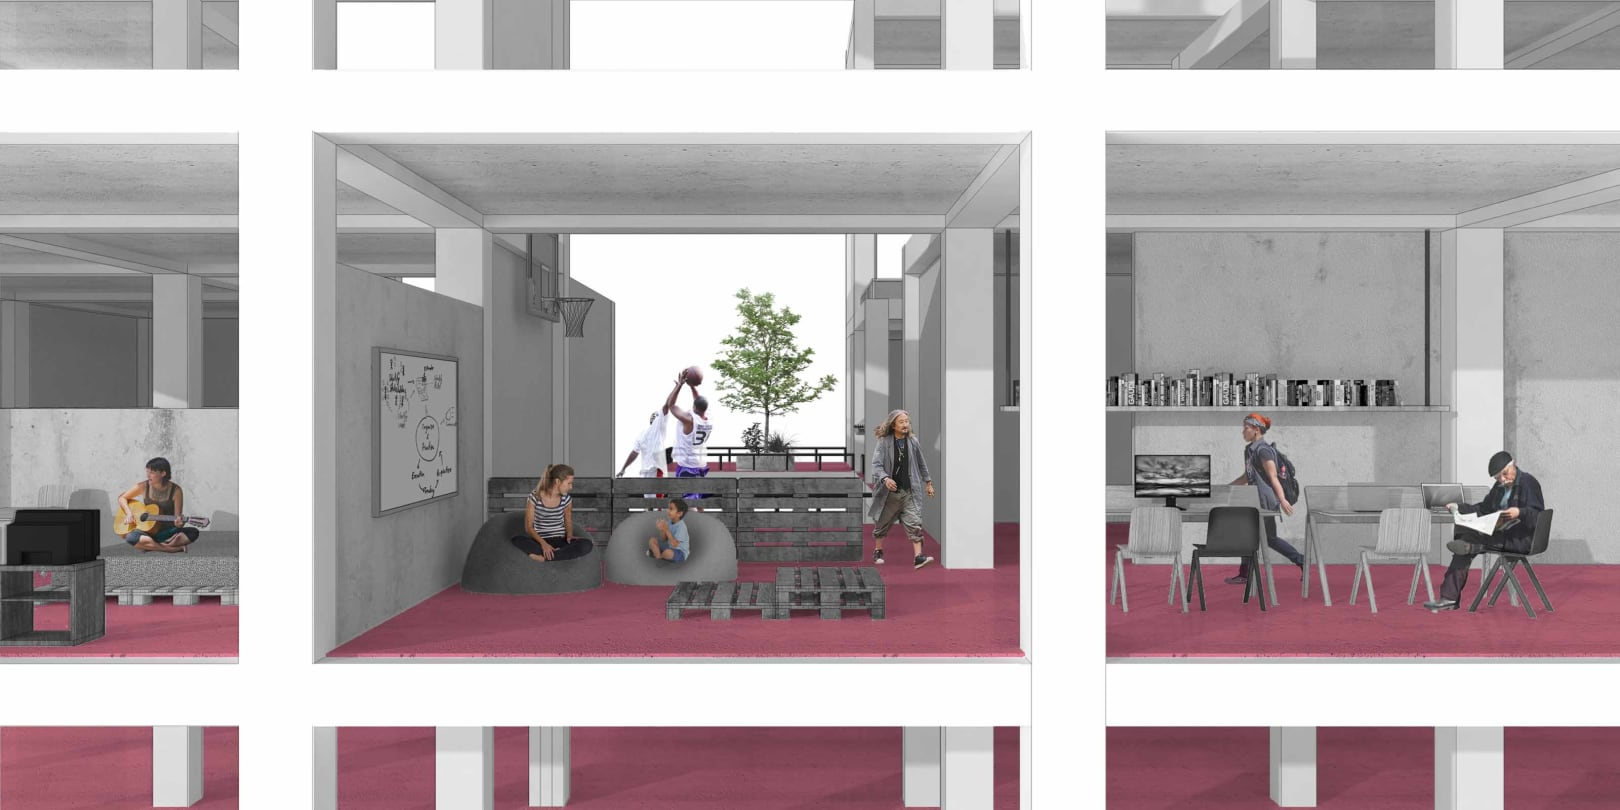 Homeless Shelter [re]Typology